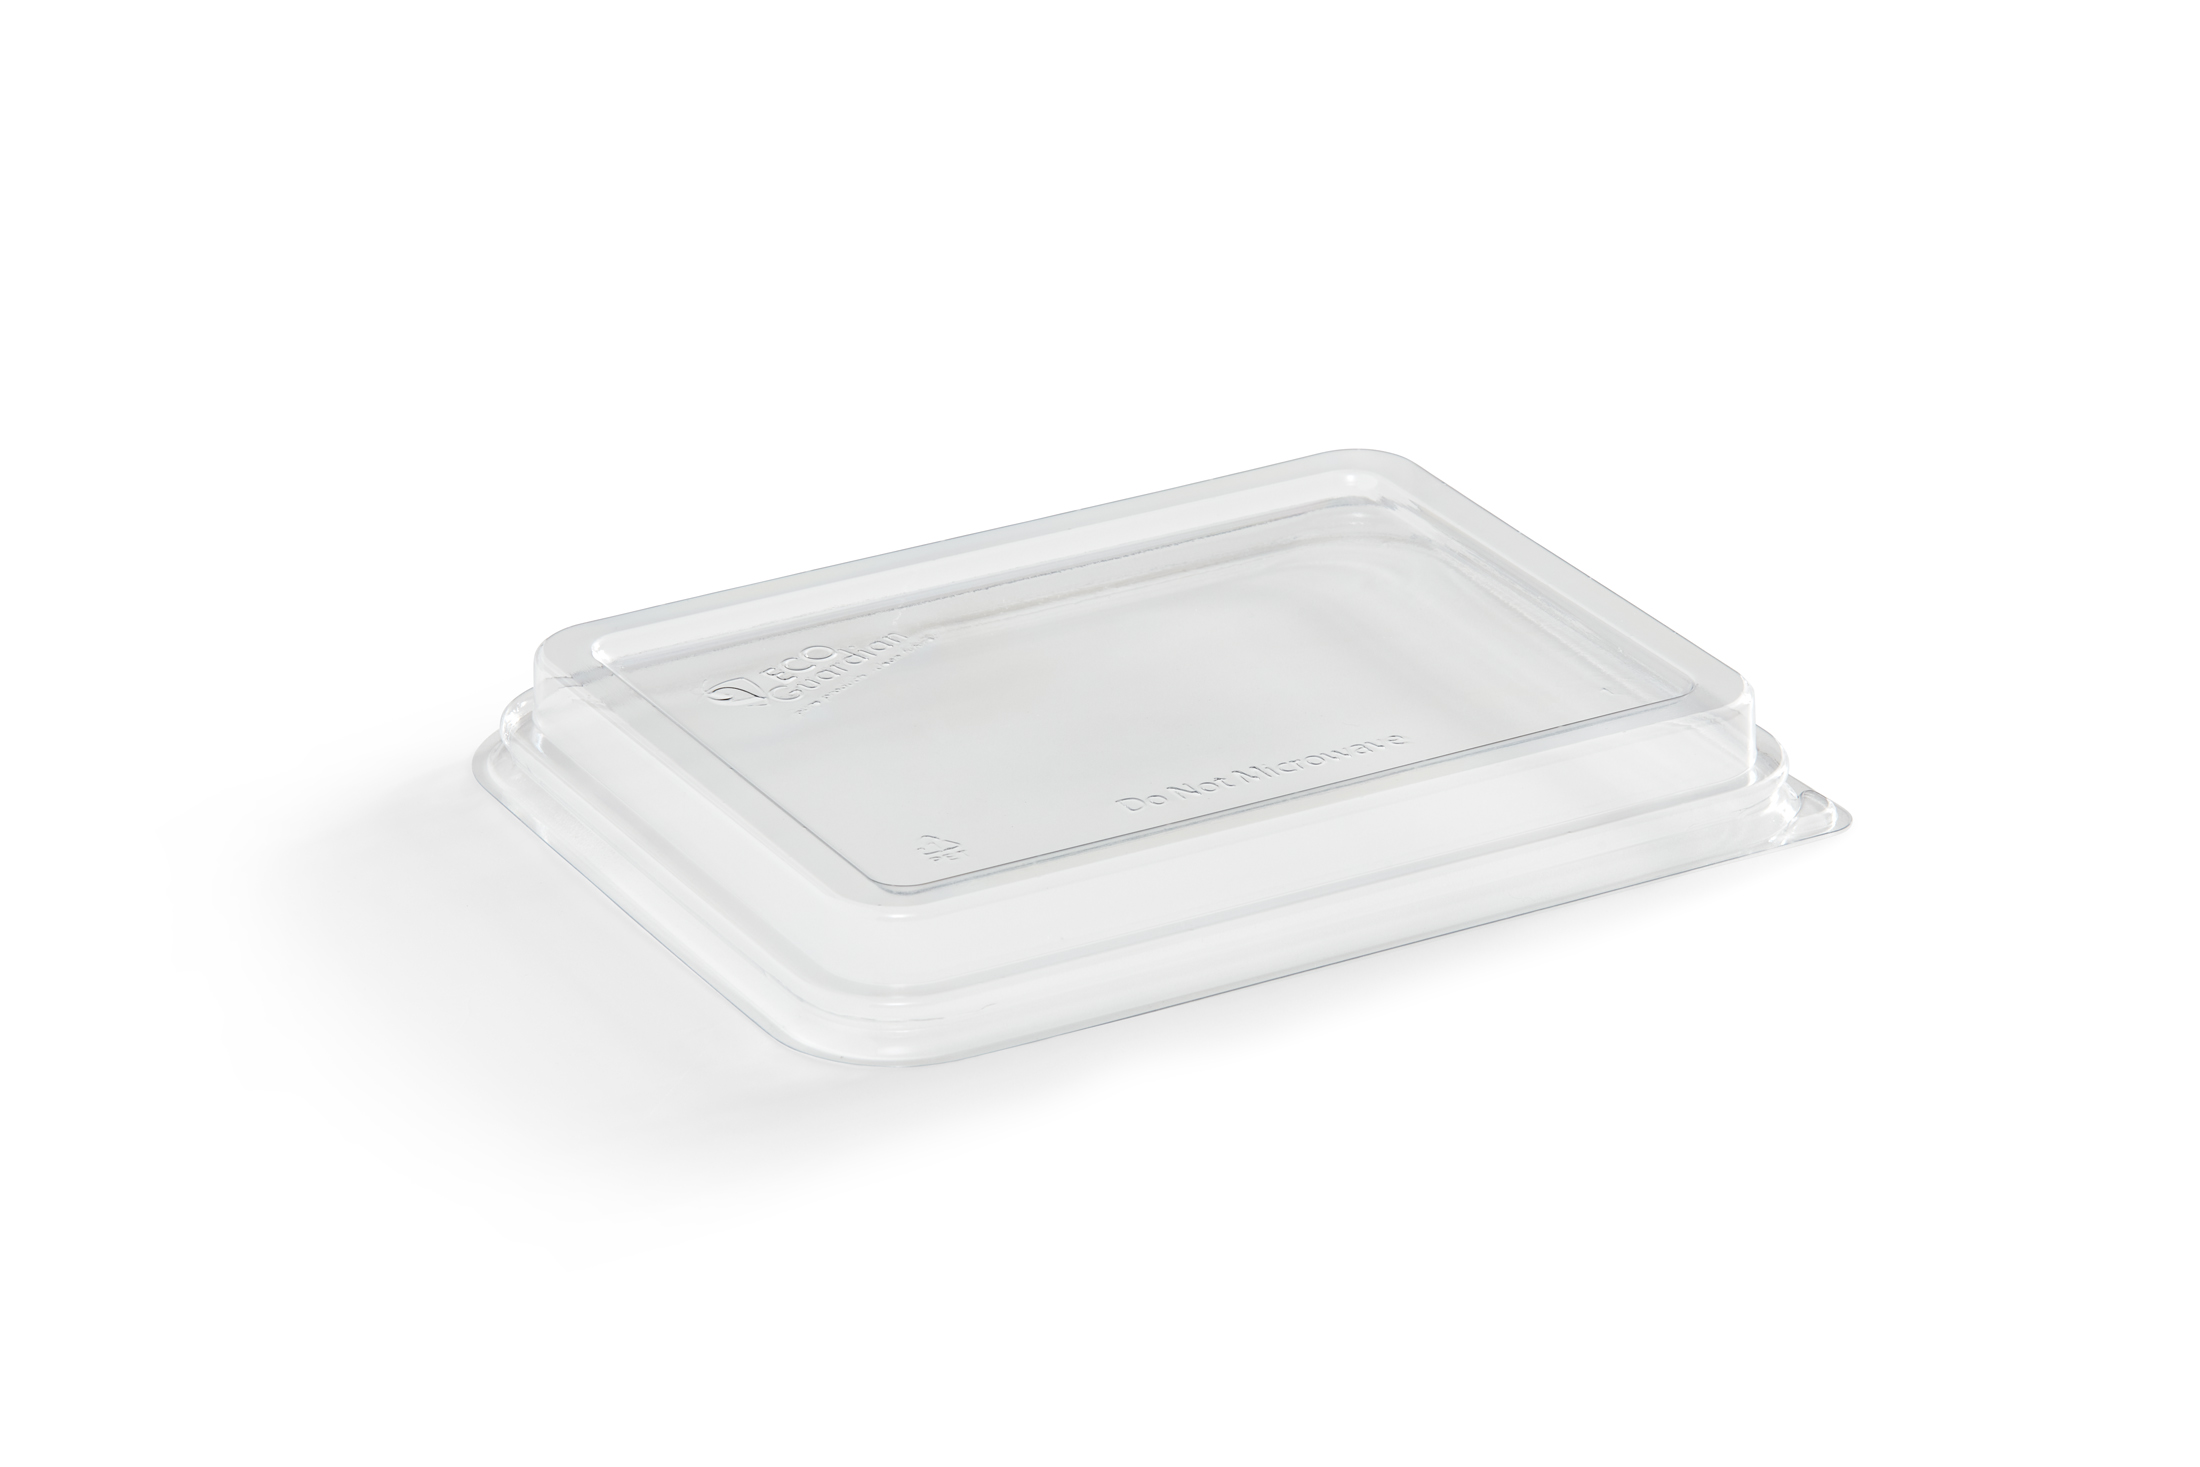 EG-N-S004-LID-R1 PET Lid for 3-Compartme